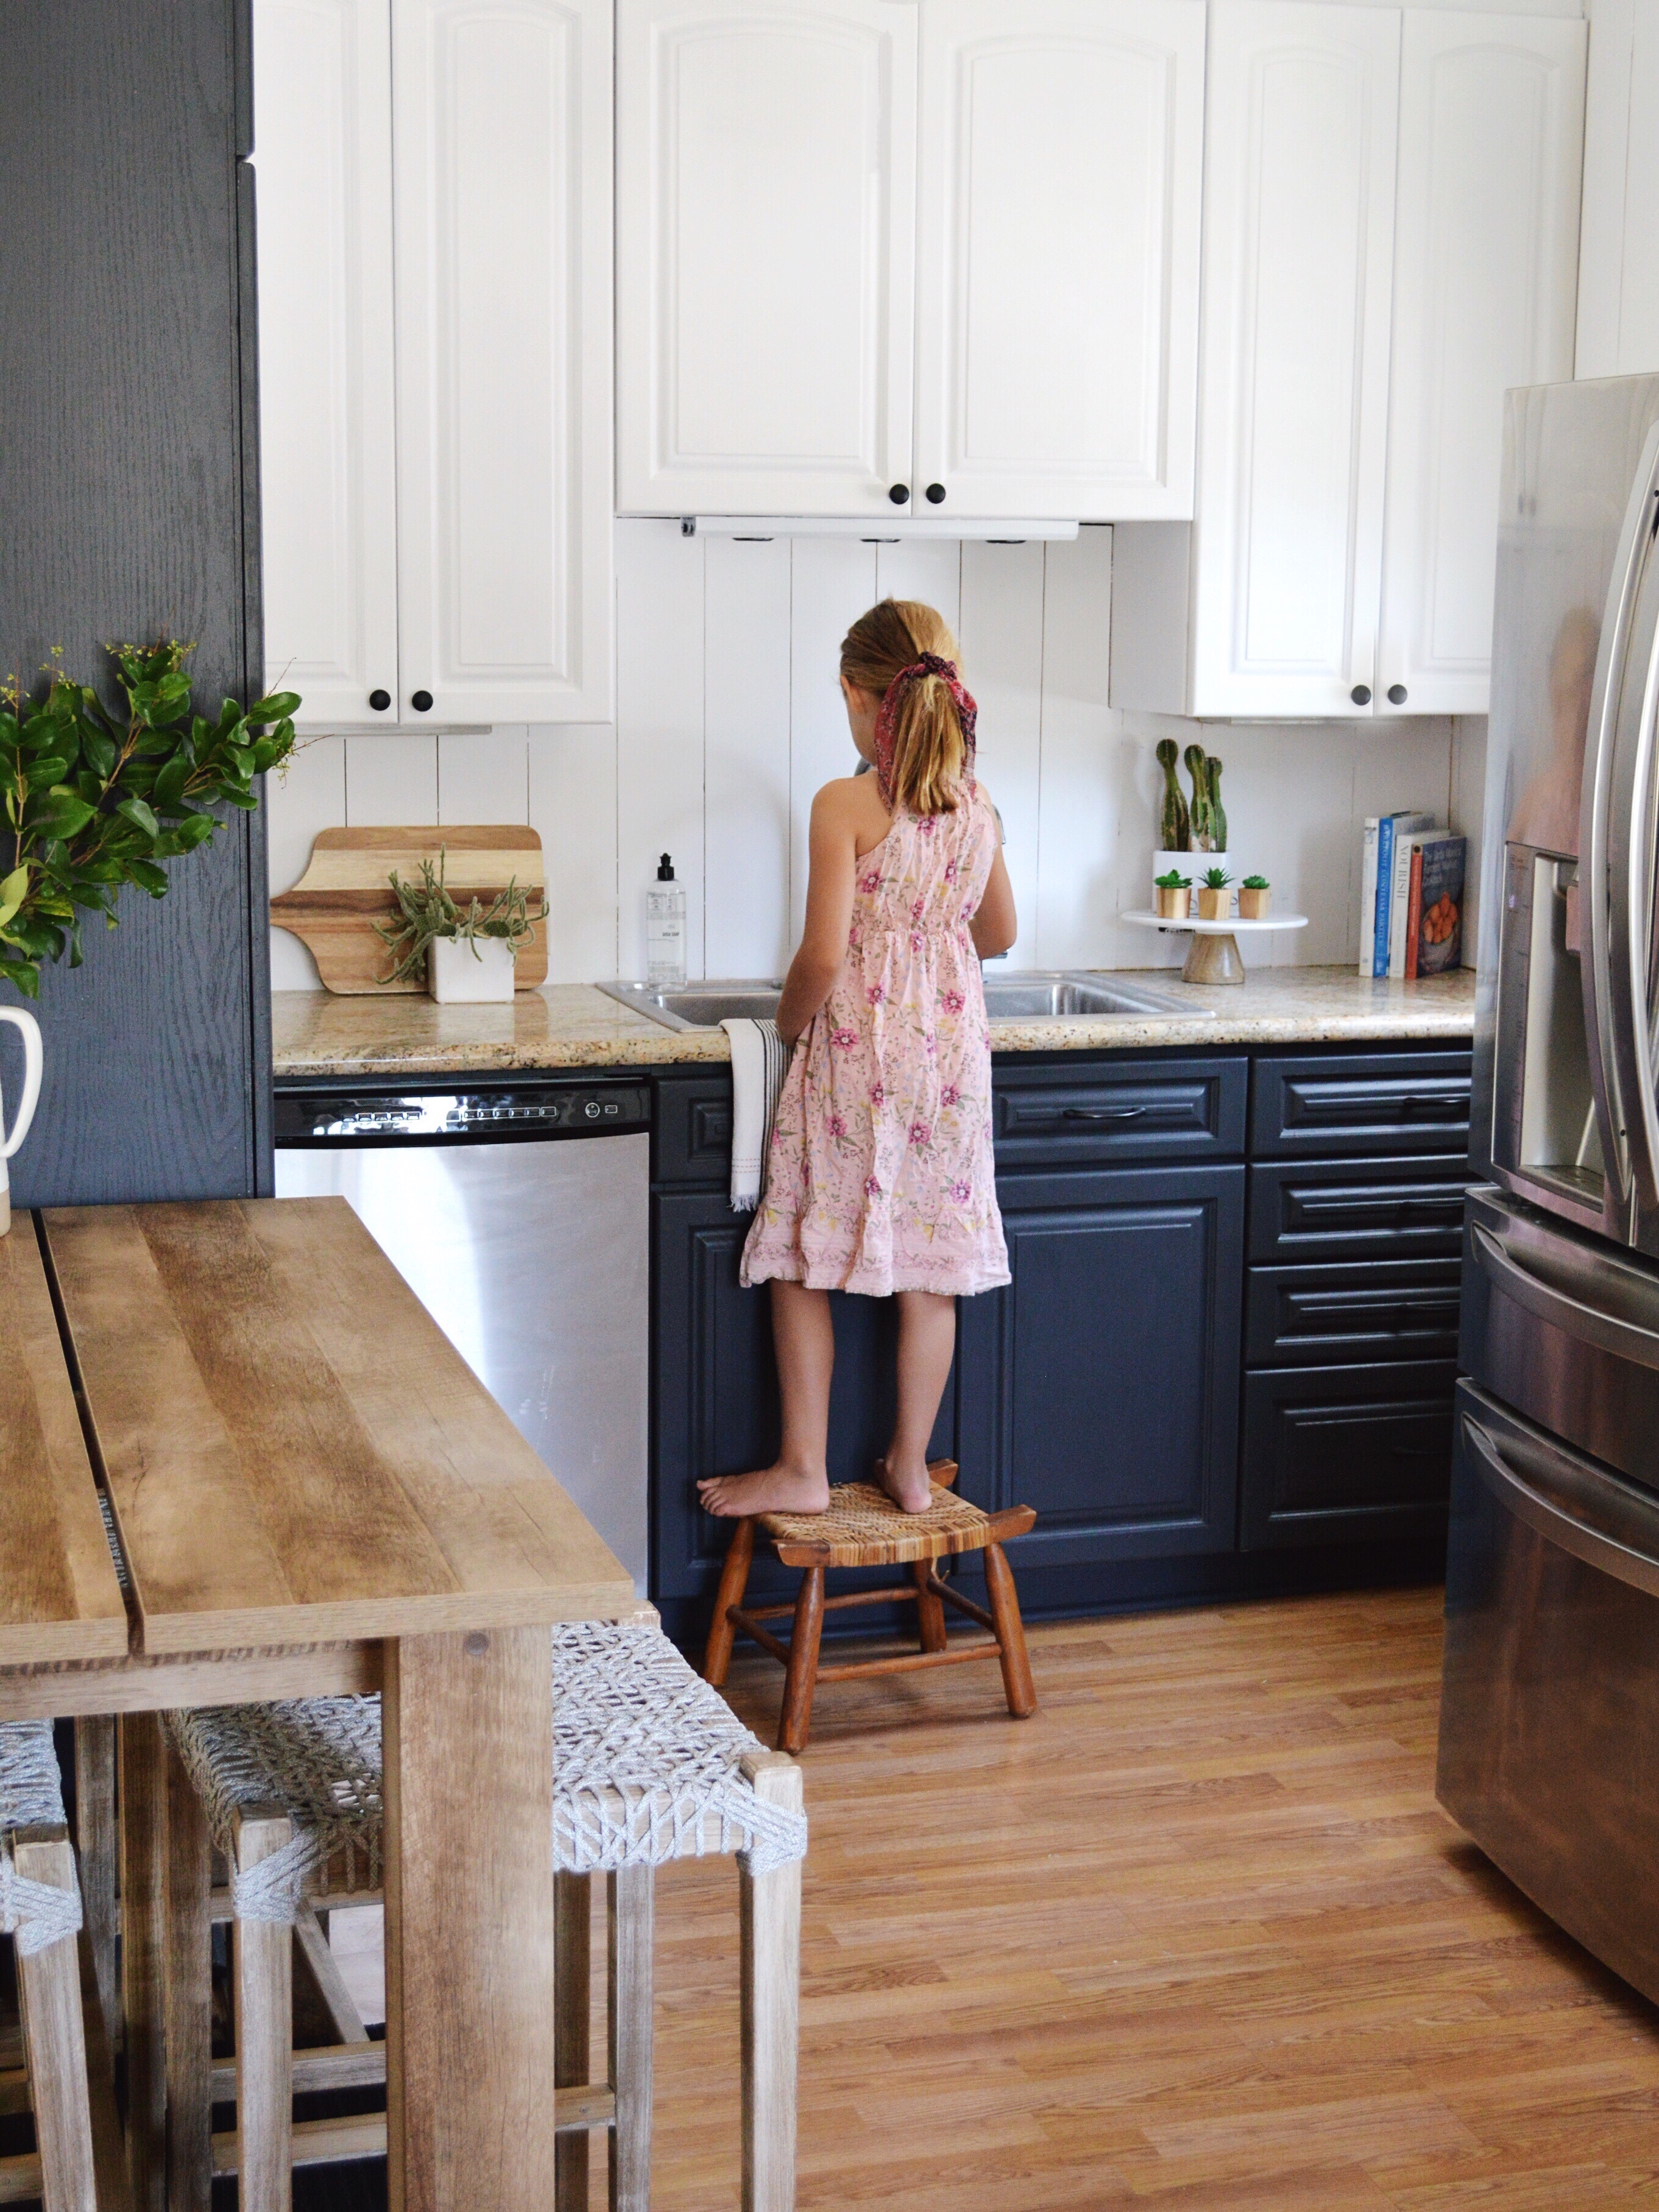 Diy Kitchen Remodel Part 1 Kristin Dion Design